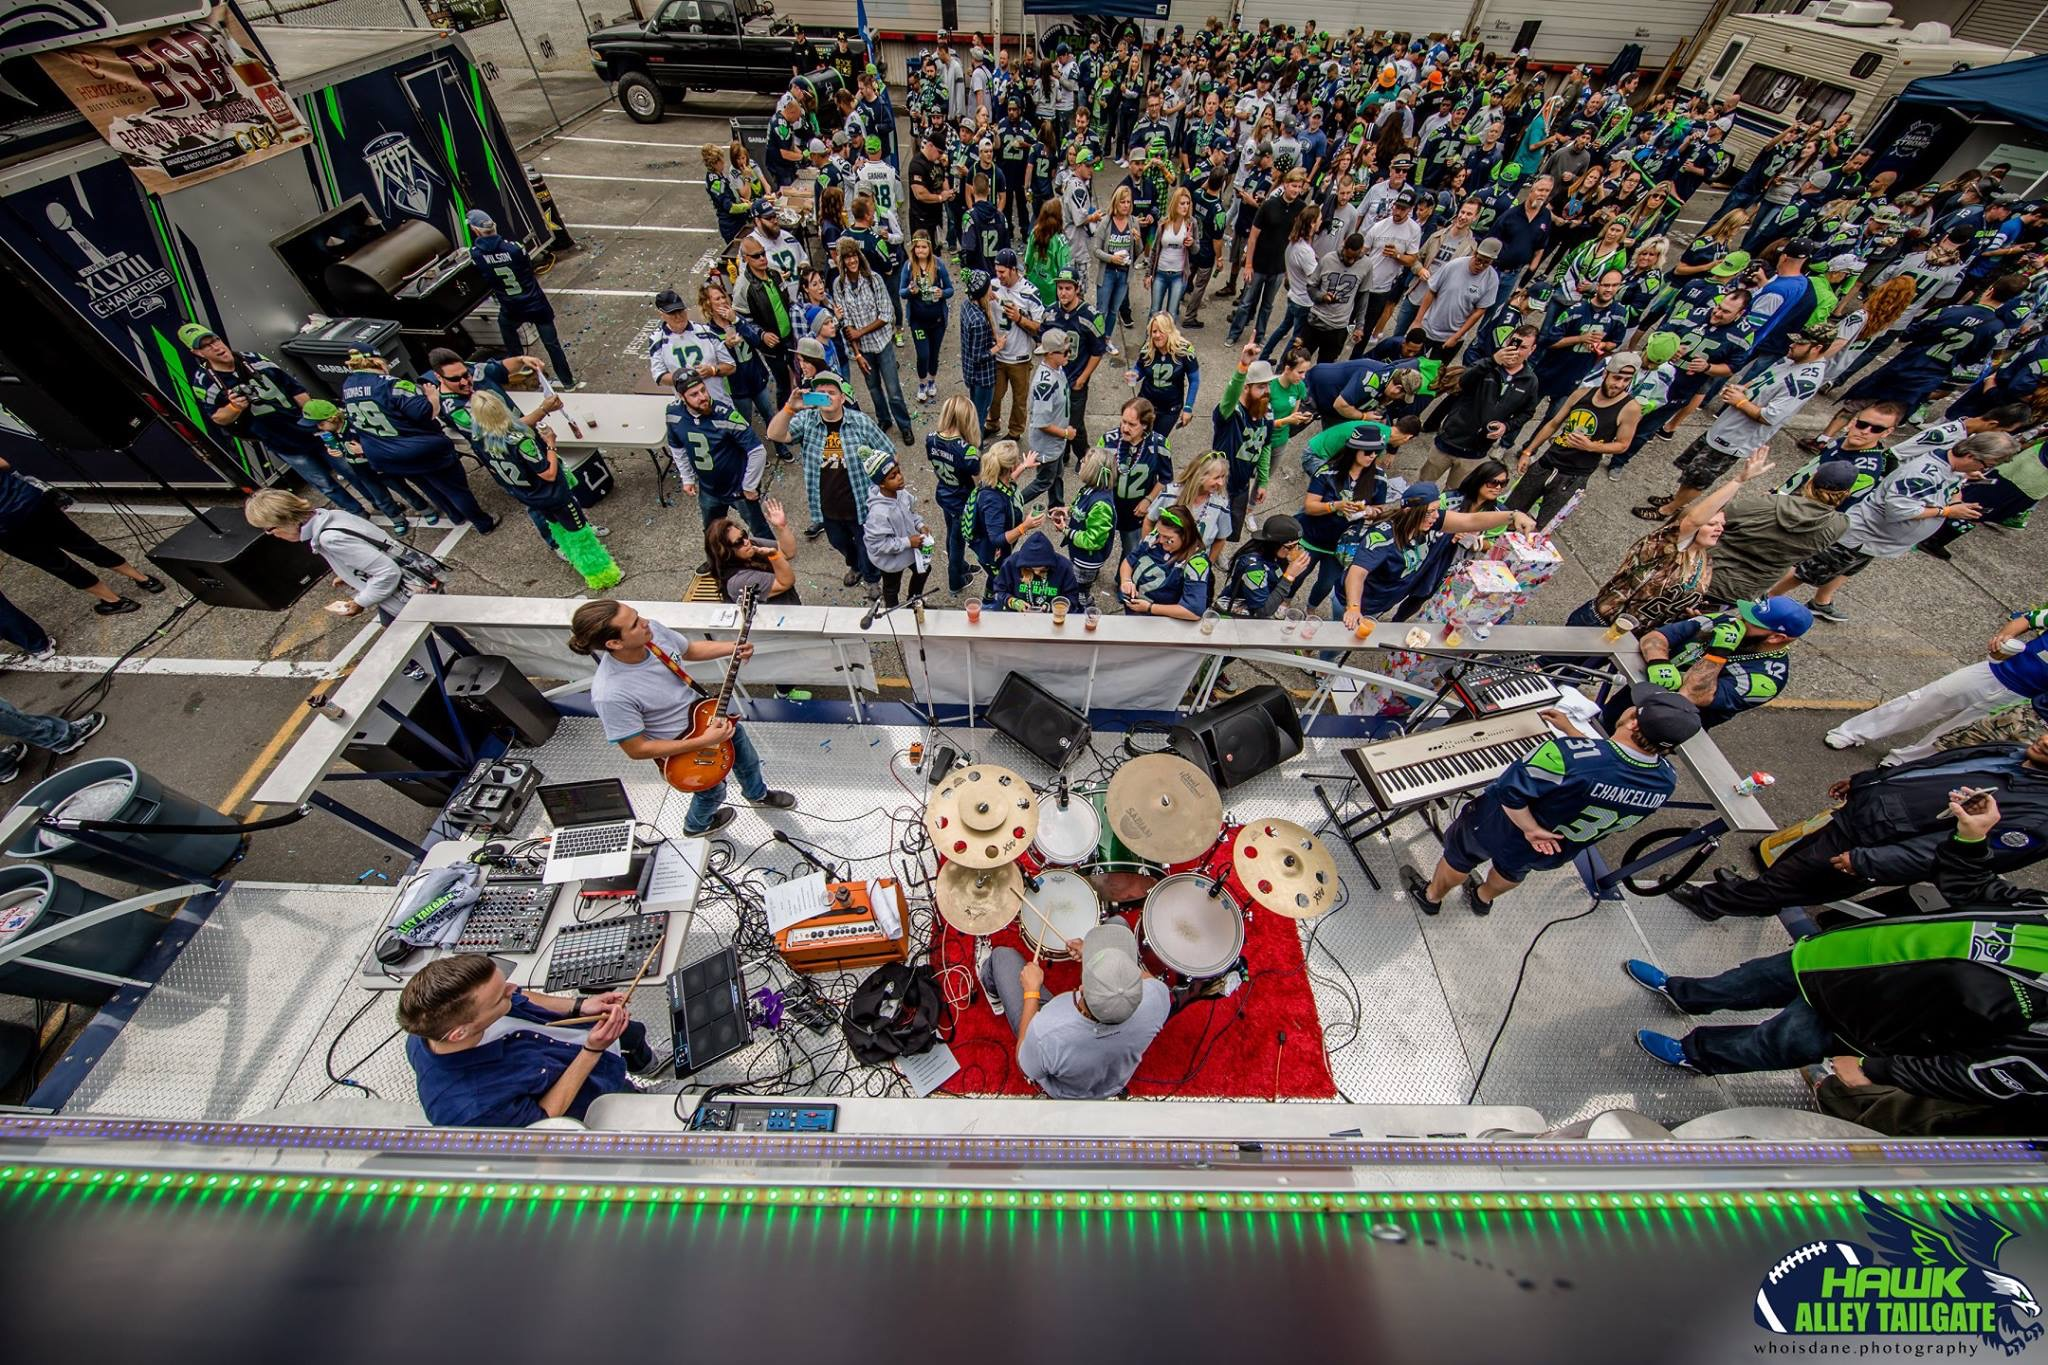 SEAHAWKS BEAST BUS TAILGATE 2016 - CLICK TO VIEW GALLERY